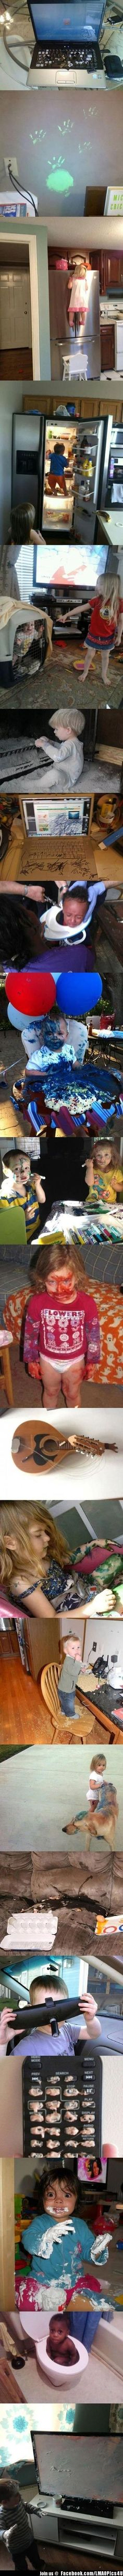 Don't Leave Kids Alone xD